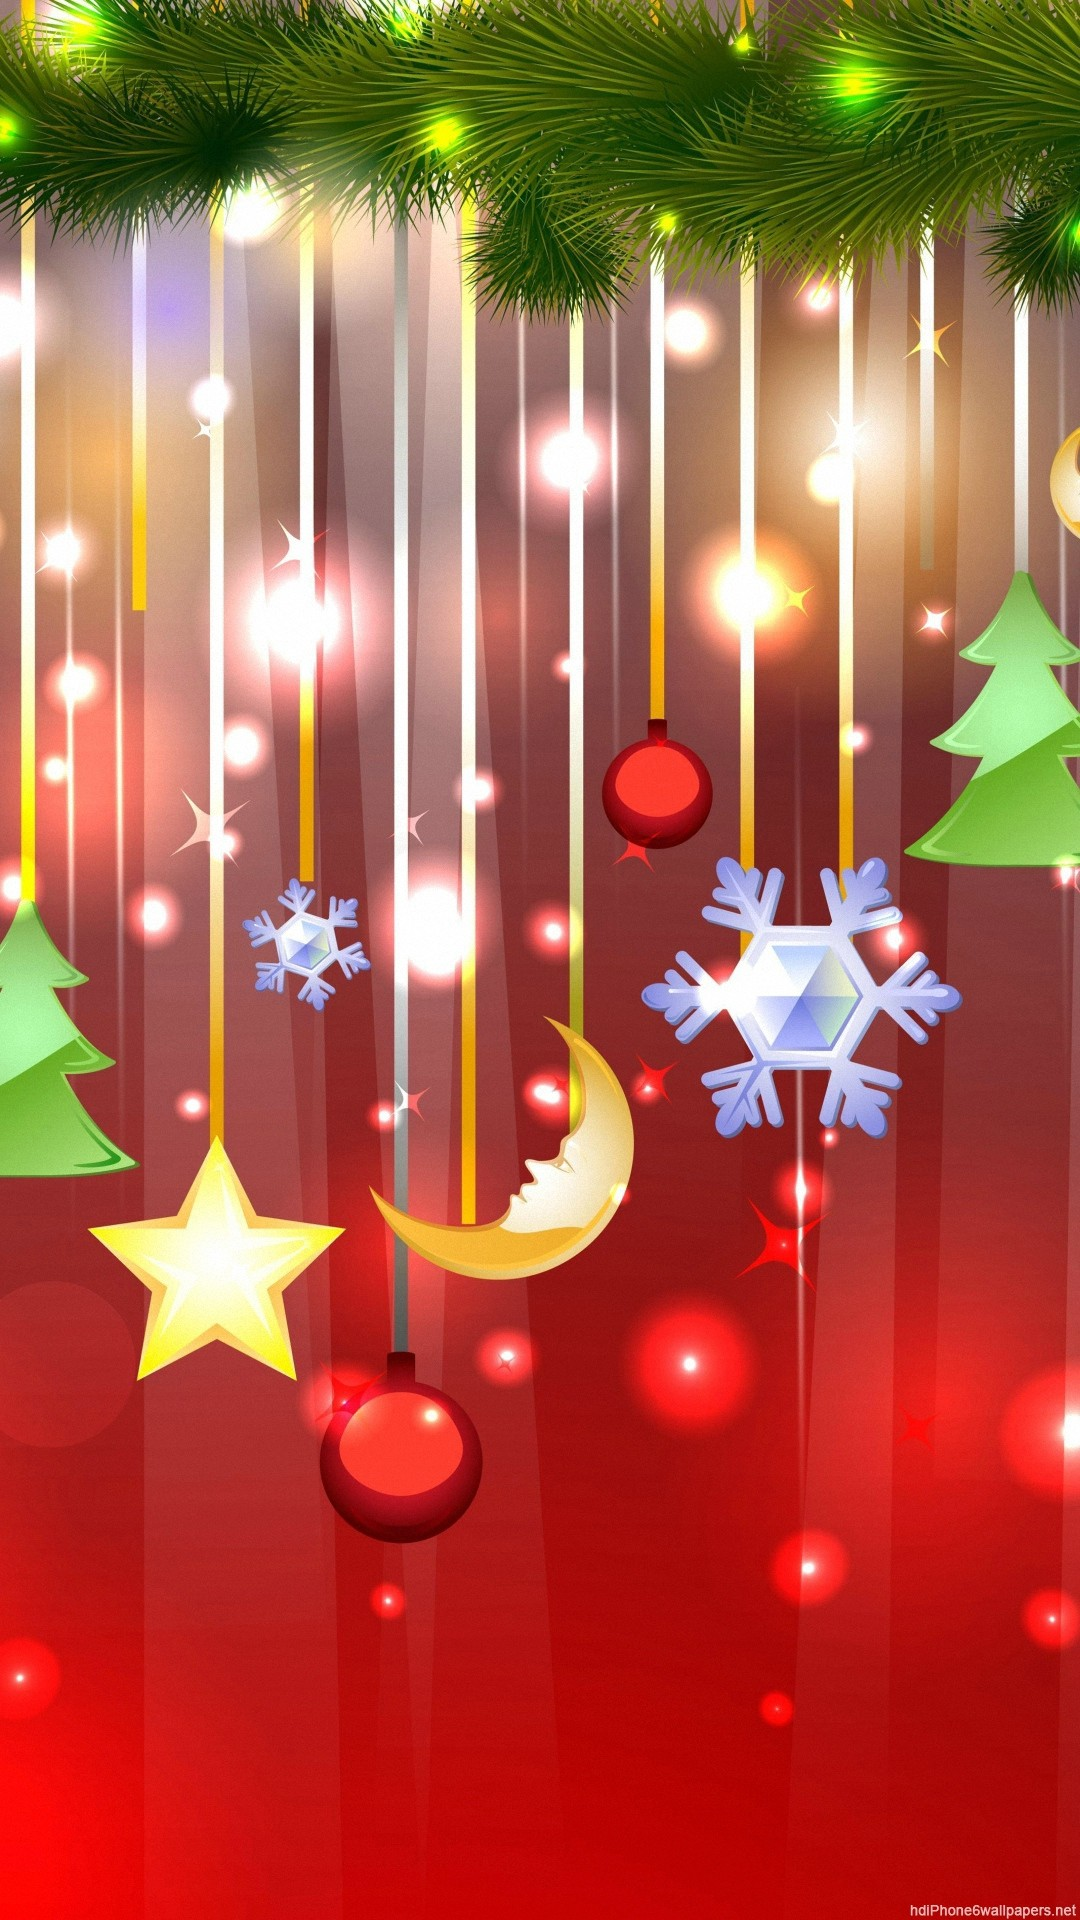 Christmas iPhone 6 Wallpapers HD and Christmas 6 Plus Wallpapers 1080P